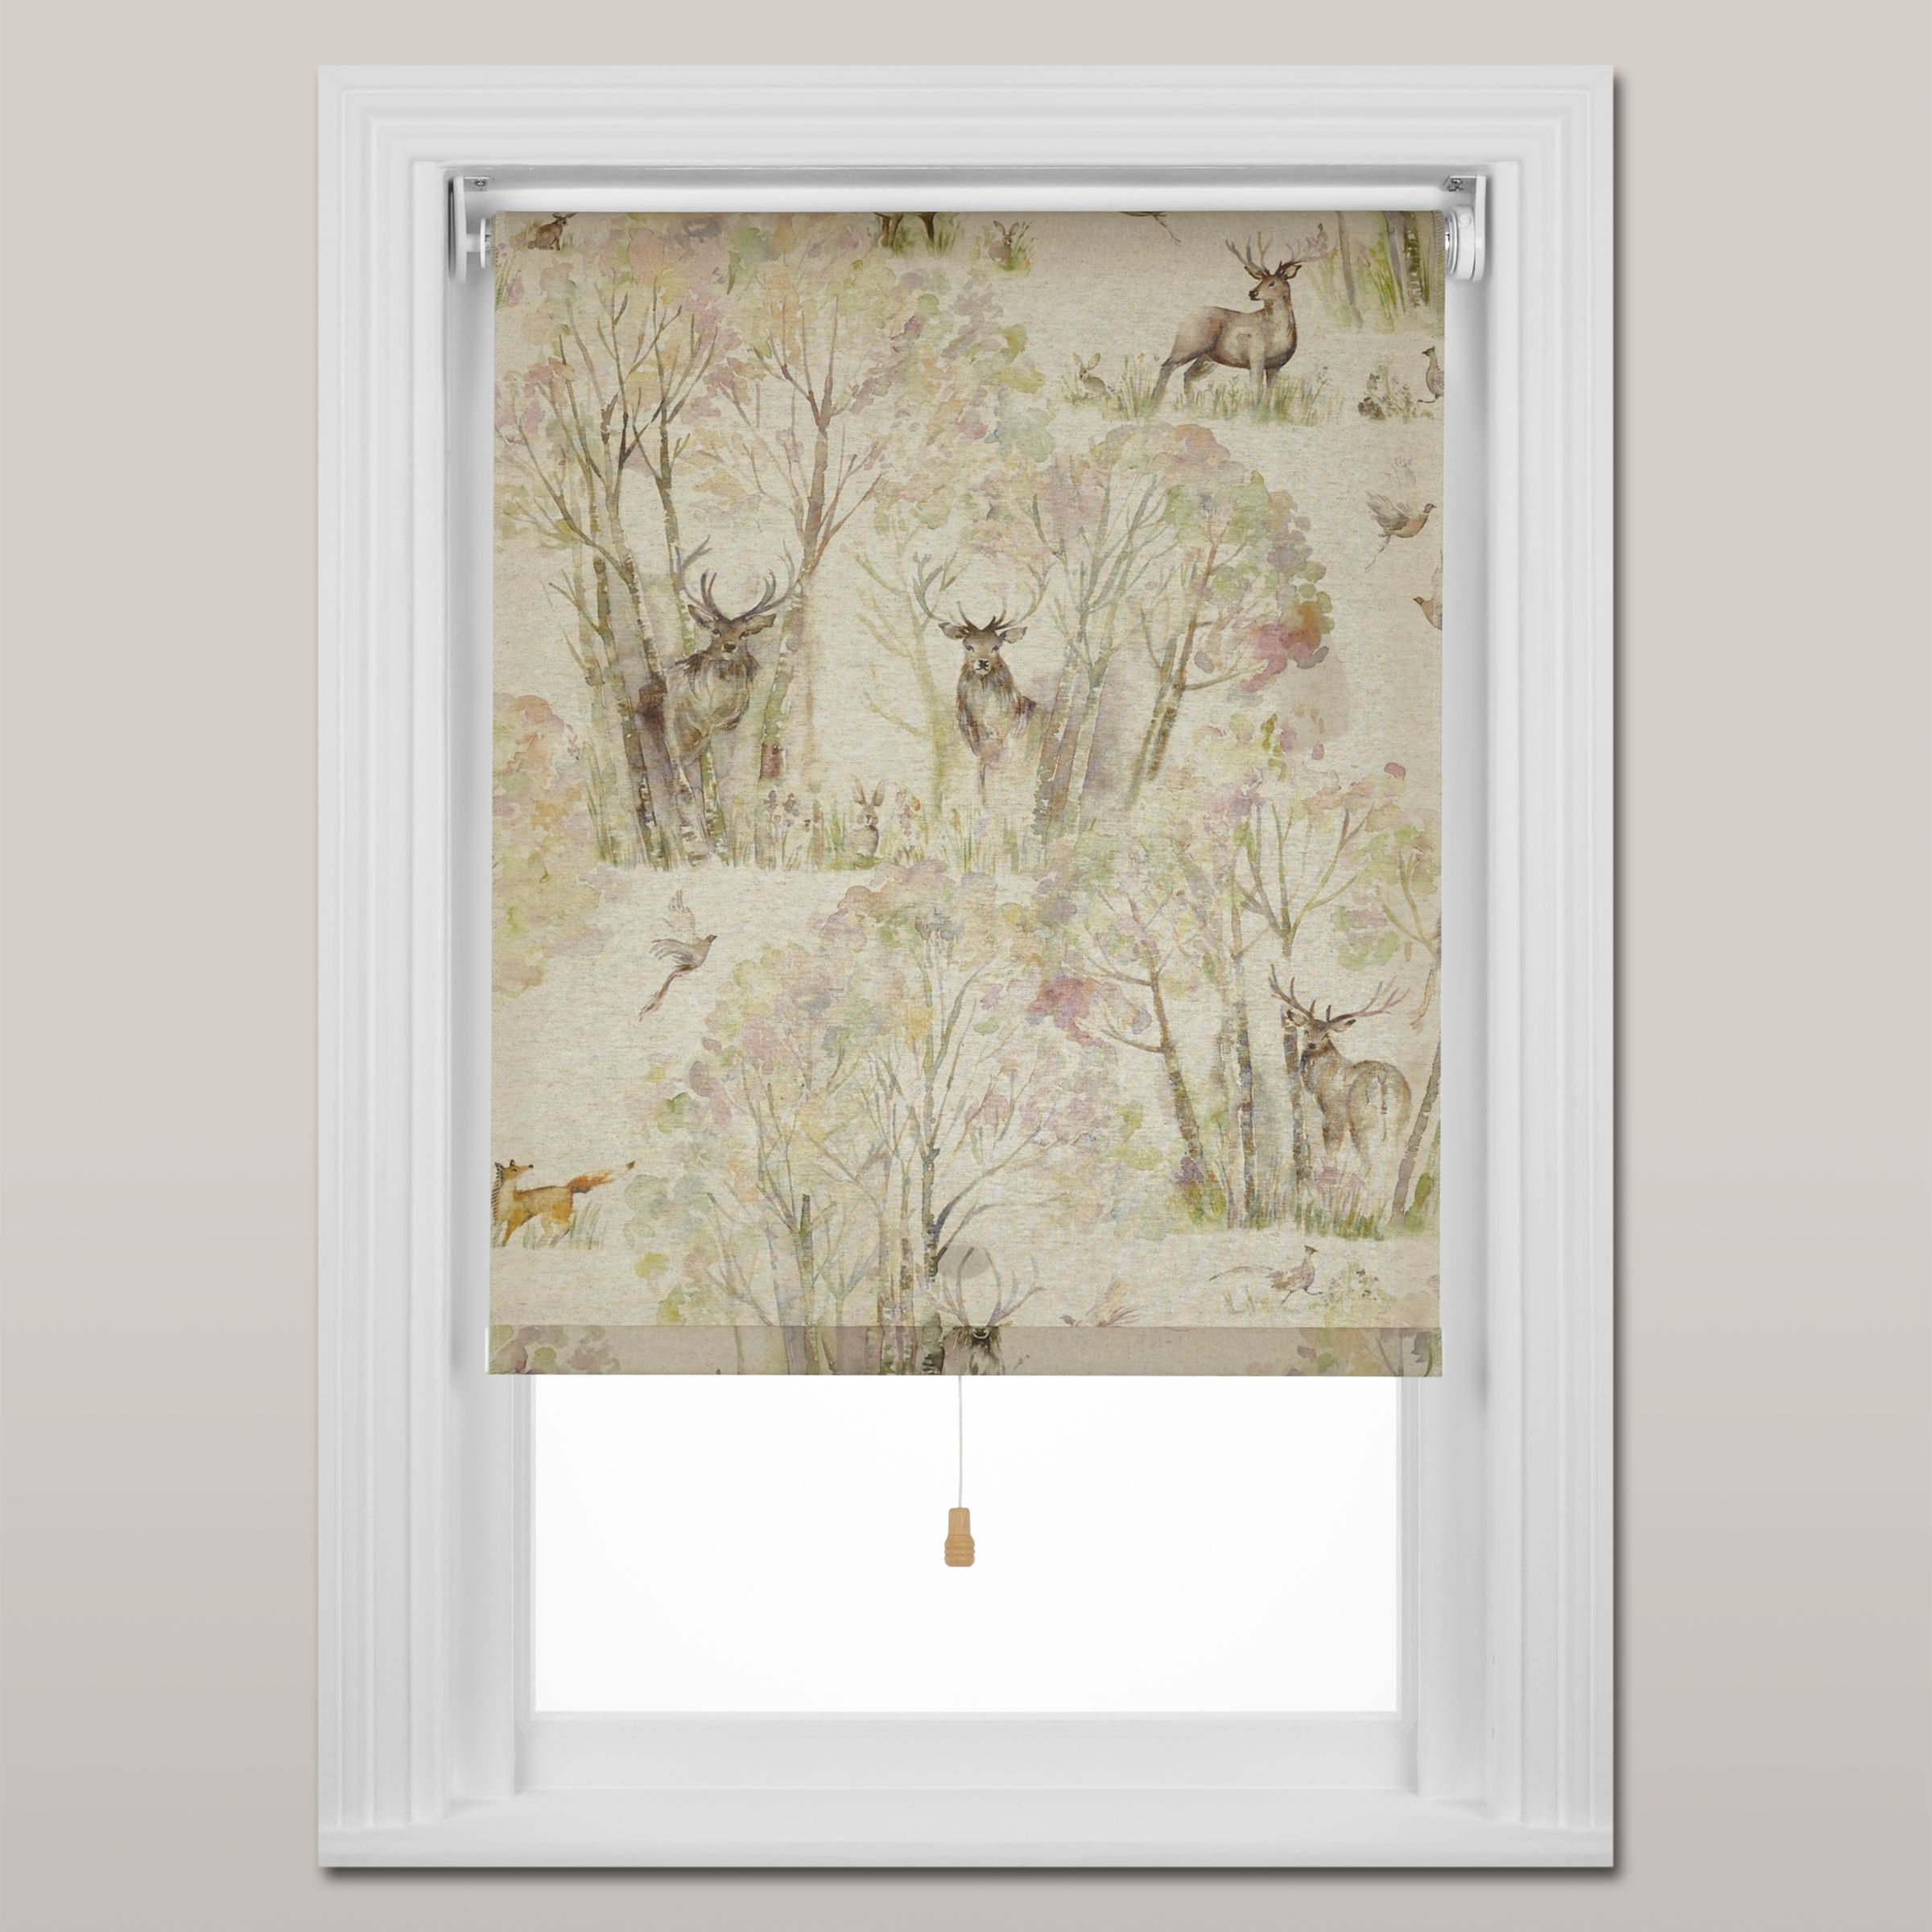 Voyage Voyage Sherwood Forest Roller Blind, Spring Mechanism, Natural